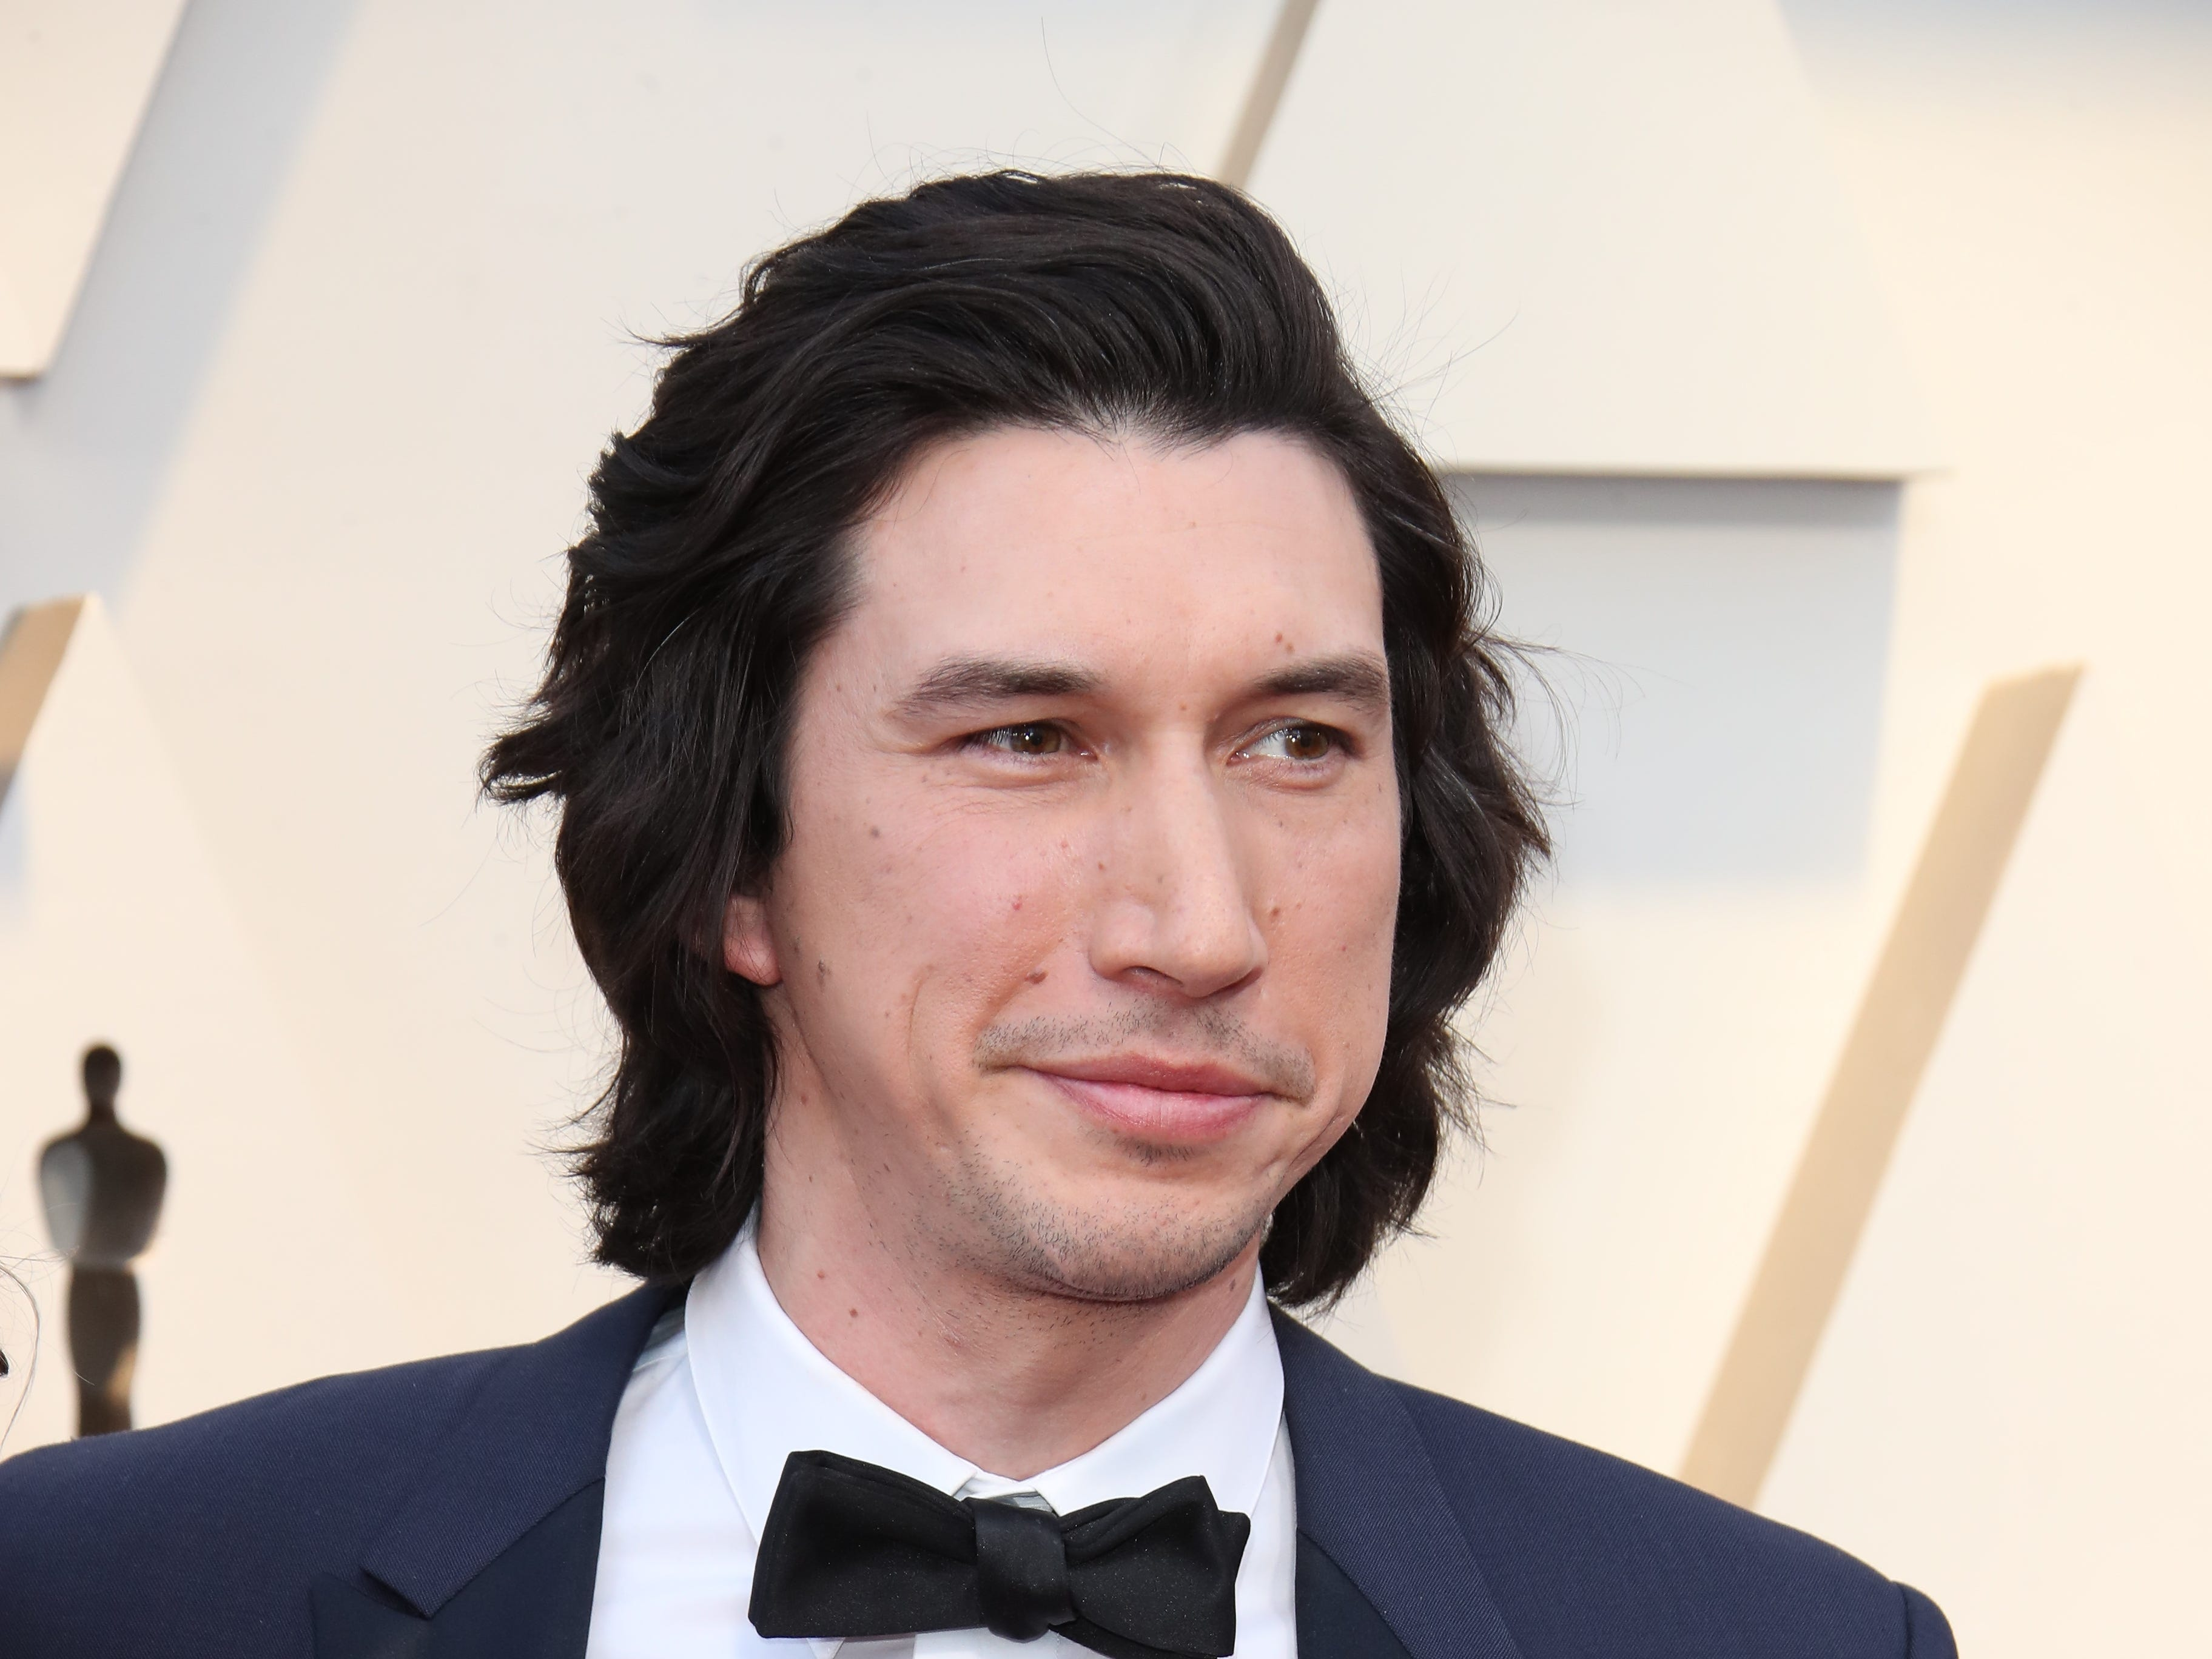 February 24, 2019; Los Angeles, CA, USA; Adam Driver arrives at the 91st Academy Awards at the Dolby Theatre. Mandatory Credit: Dan MacMedan-USA TODAY NETWORK (Via OlyDrop)